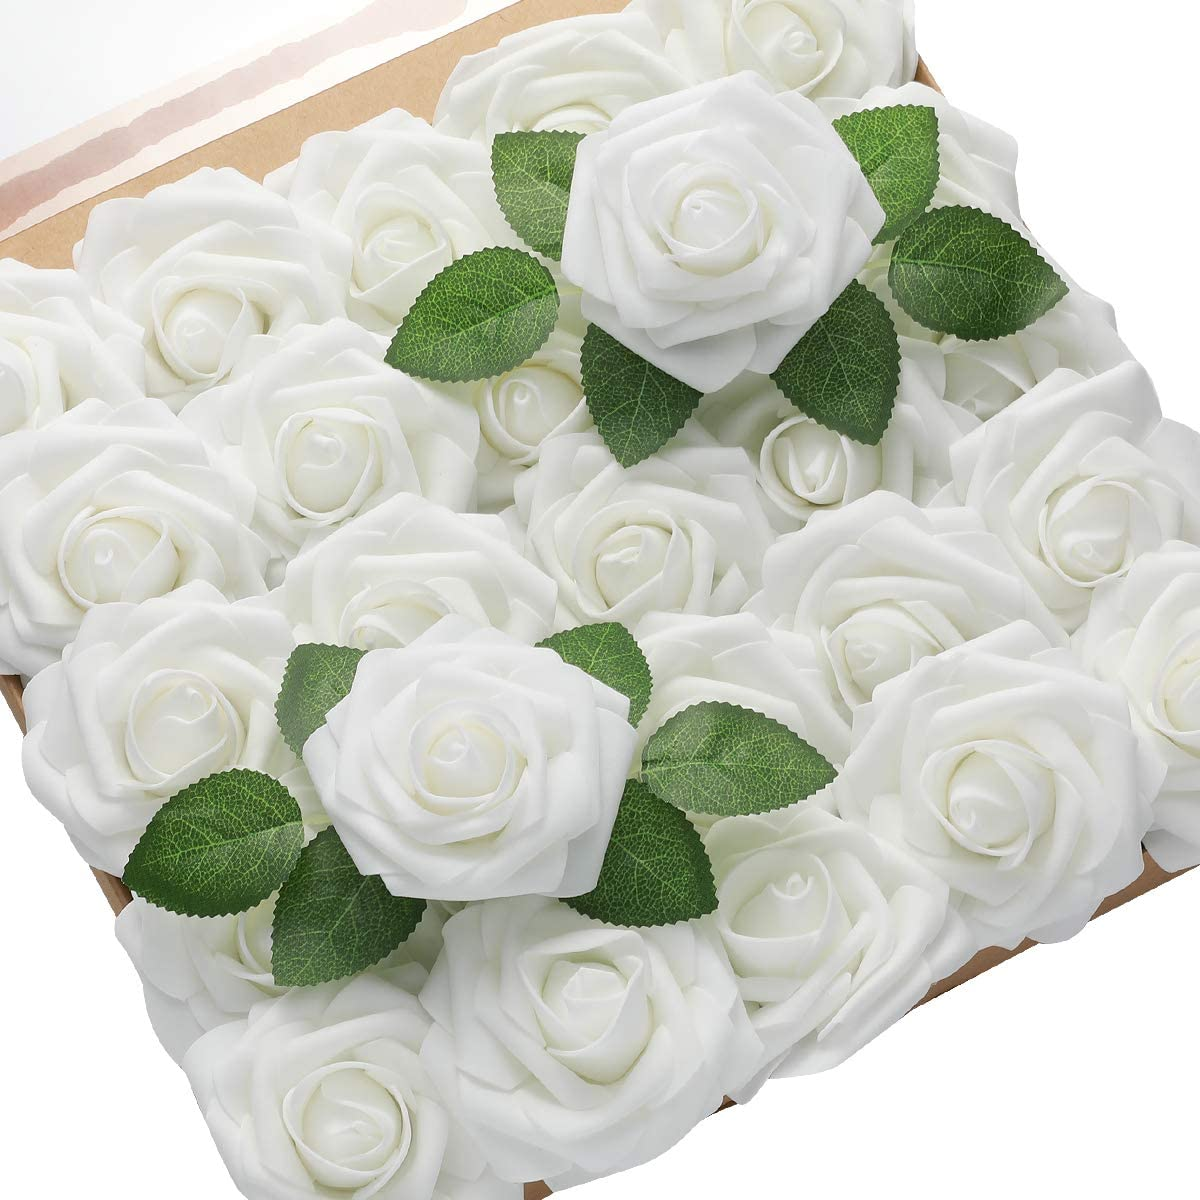 DerBlue Large special price 60pcs Artificial Roses Max 45% OFF Flowers Looking Real A Fake